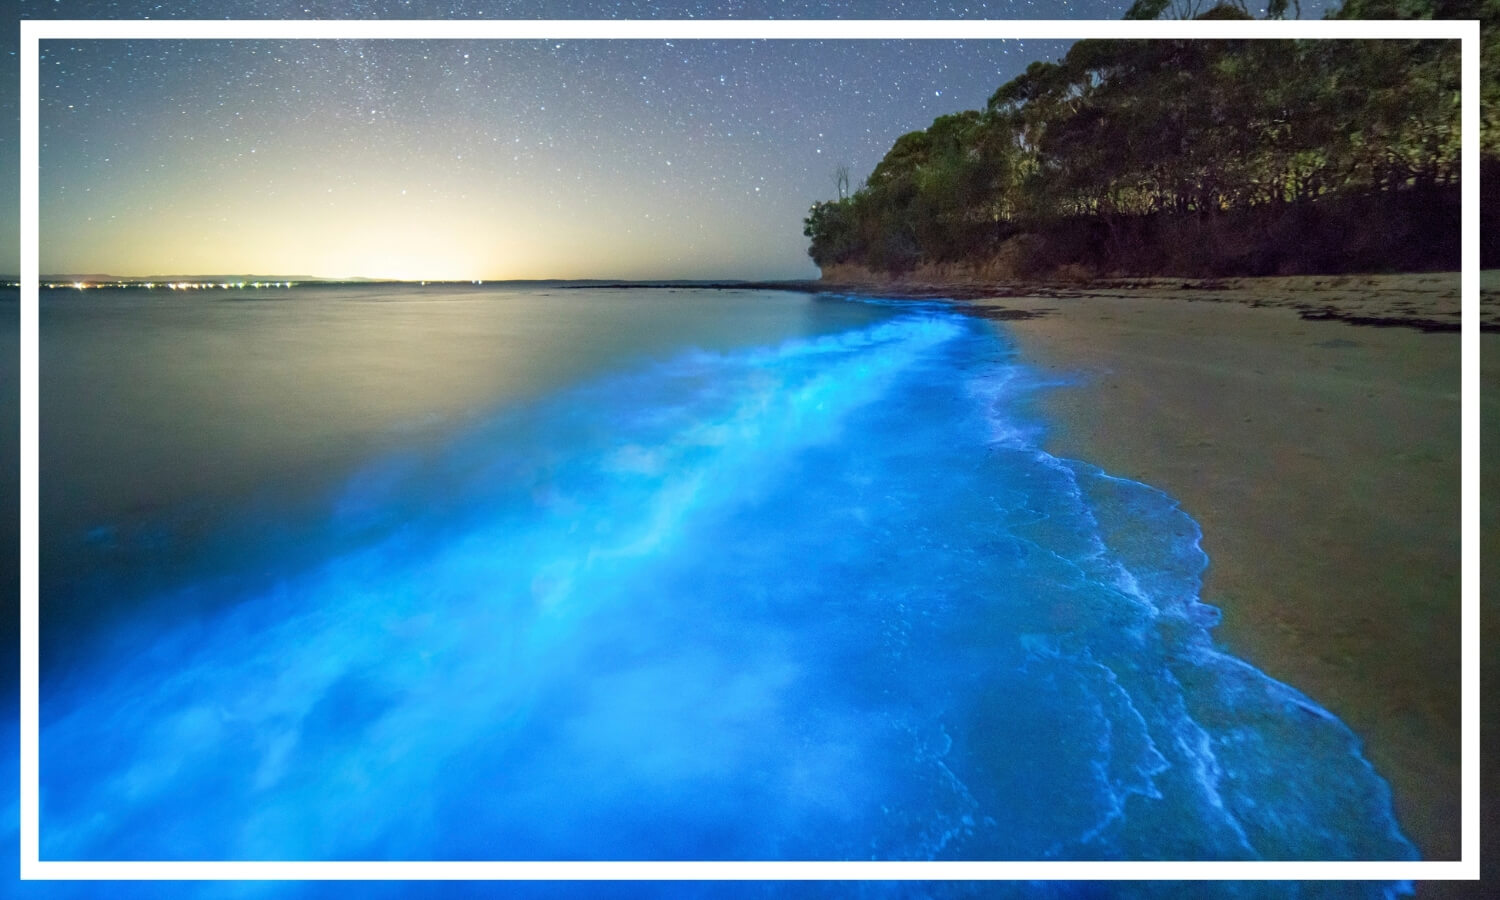 Bioluminescent algae seen at Plantation Point, Vincentia in Jervis Bay by Destination NSW